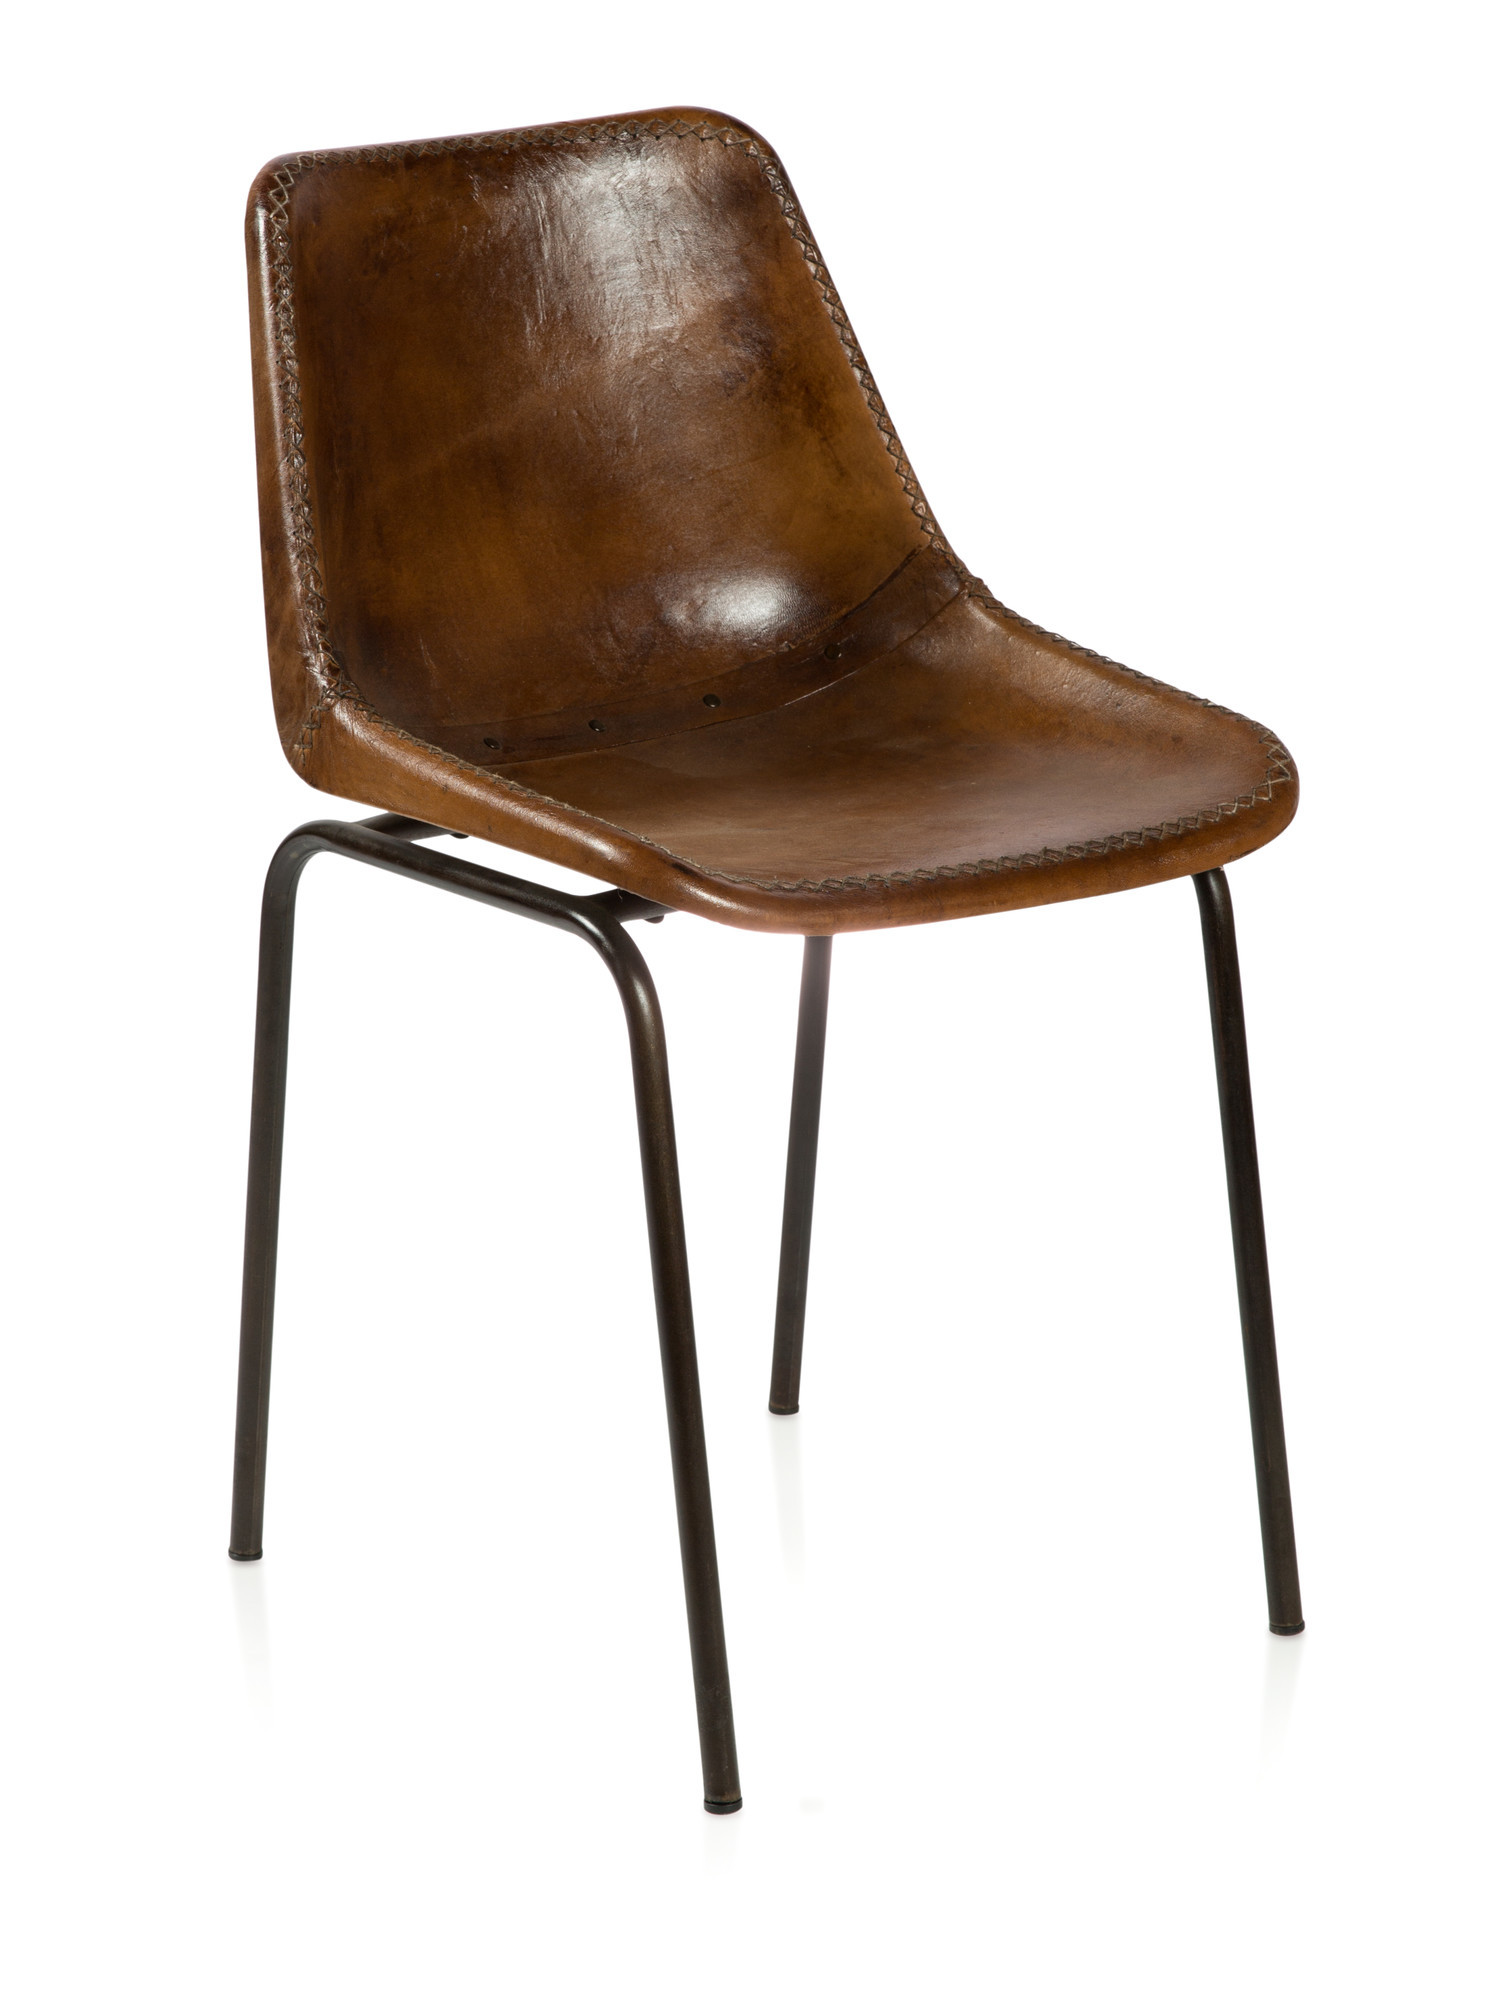 Sku cask6173 andiez brown leather dining chair is also sometimes listed under the following manufacturer numbers mh04